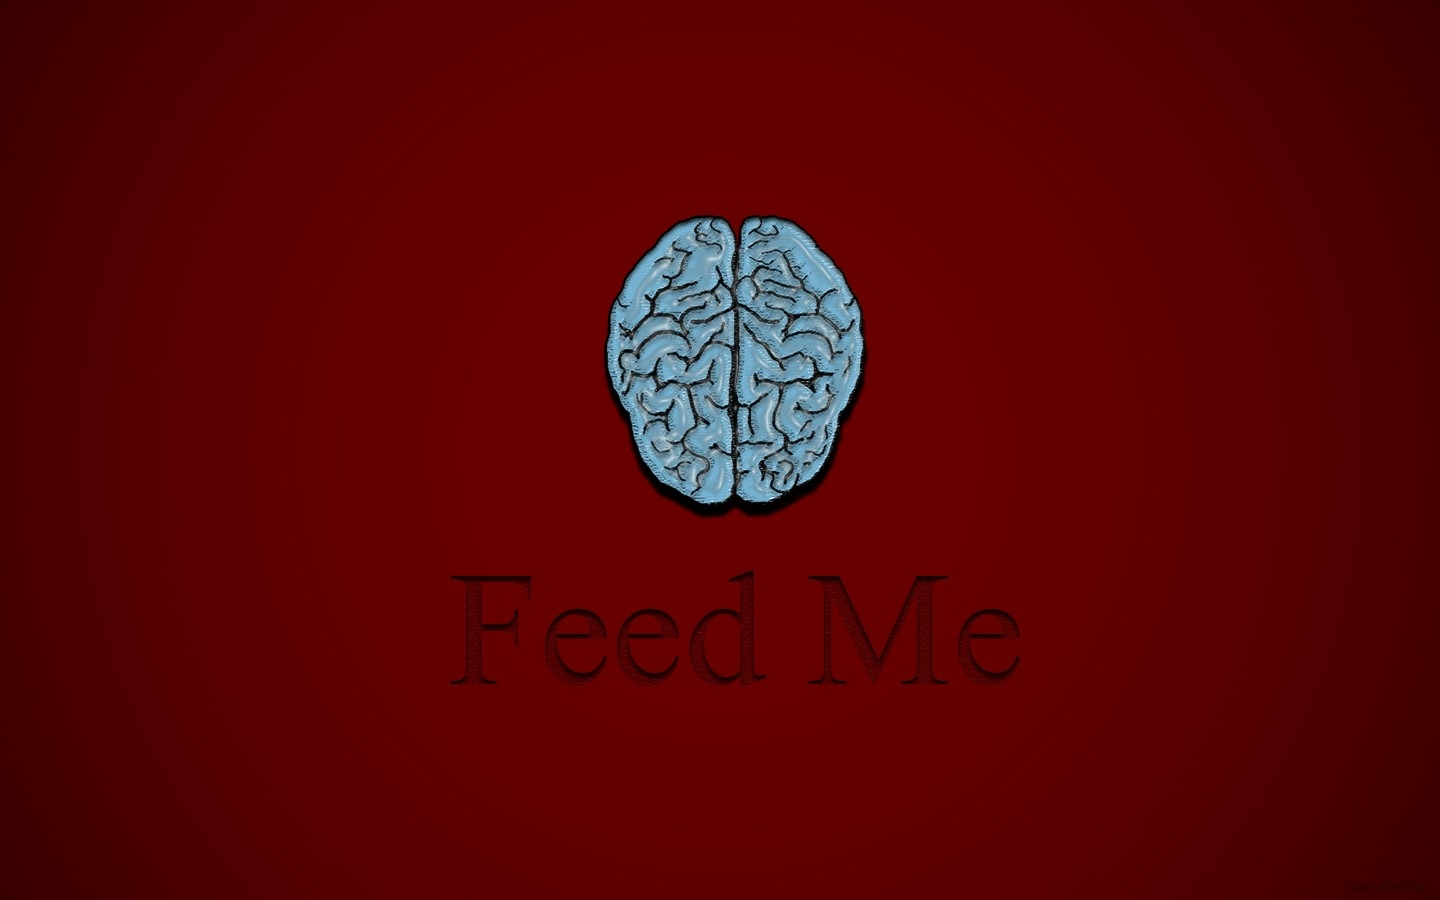 1440x900 - Feed Me Wallpapers 35